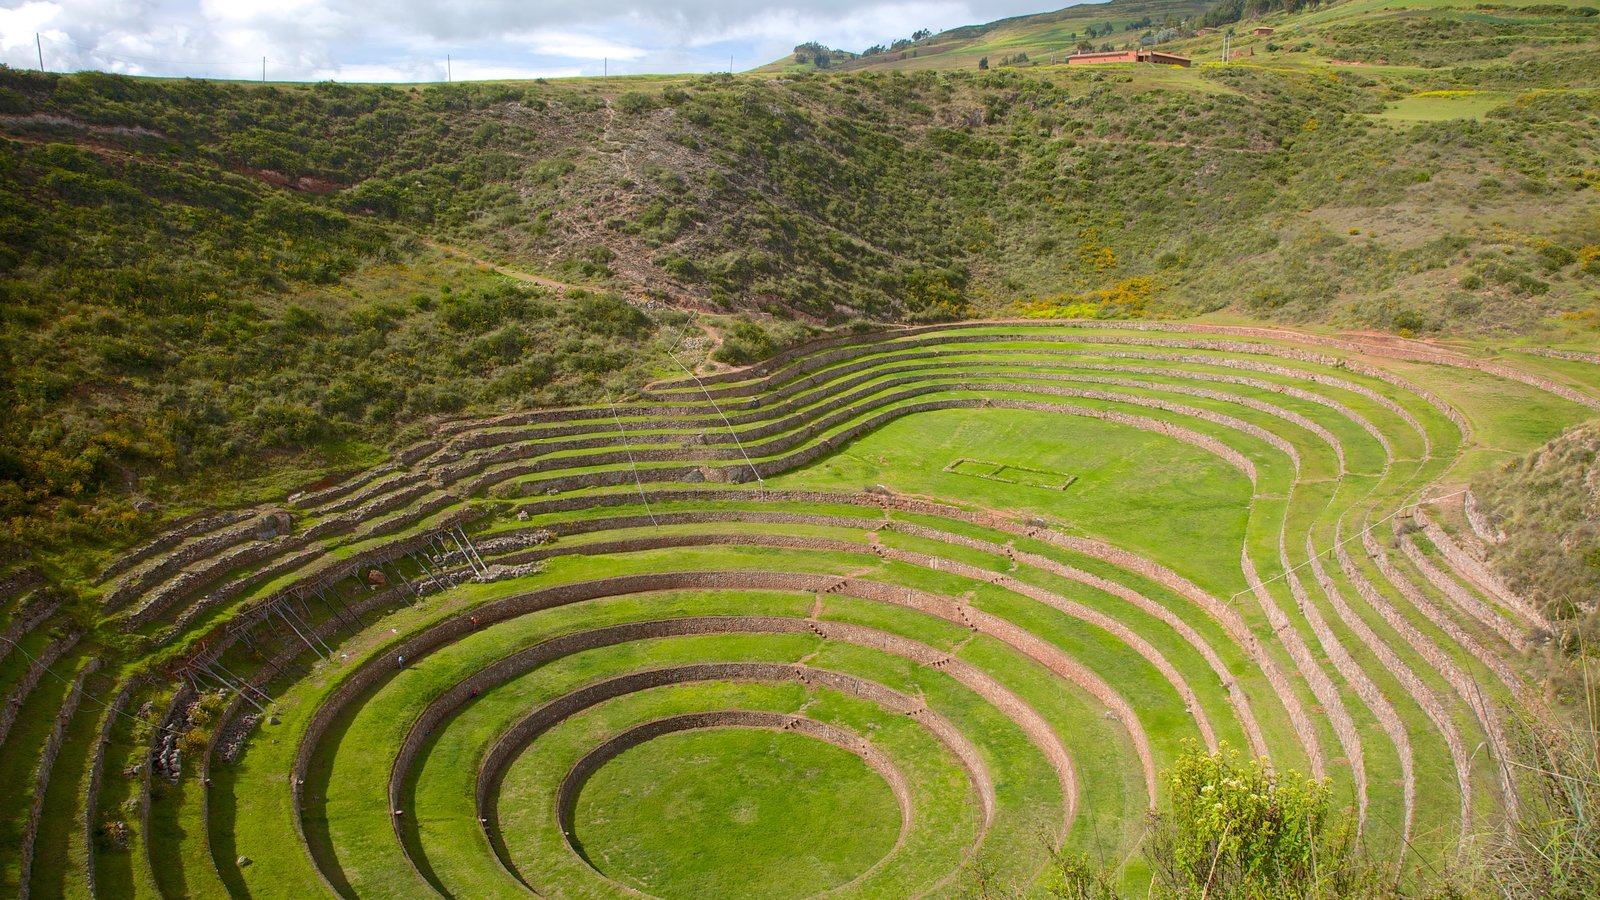 Moray Terraces which includes landscape views and indigenous culture